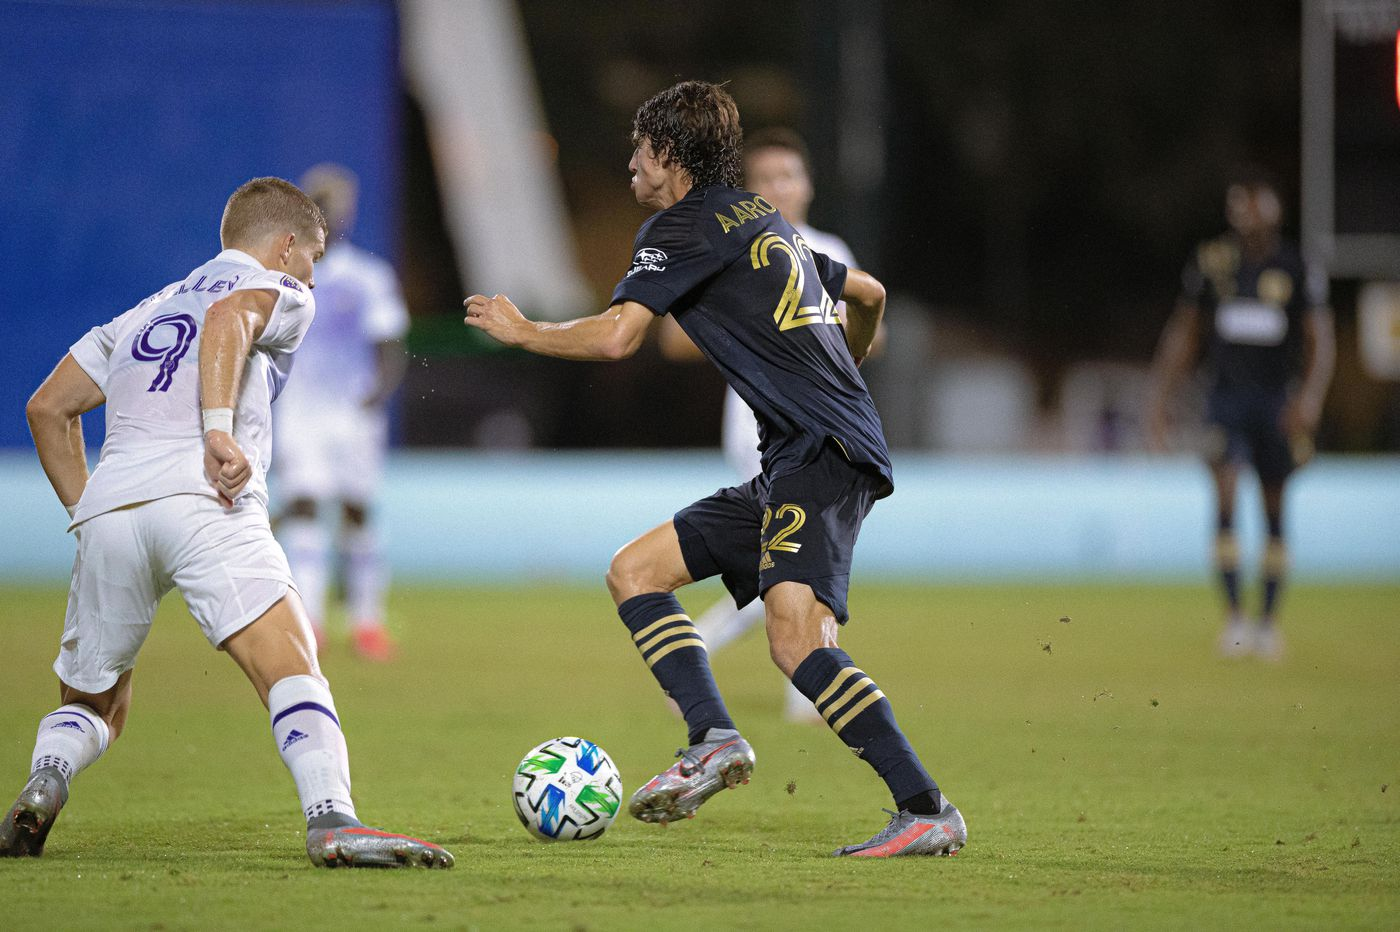 Union finish second in MLS tournament group after 1-1 tie with Orlando City